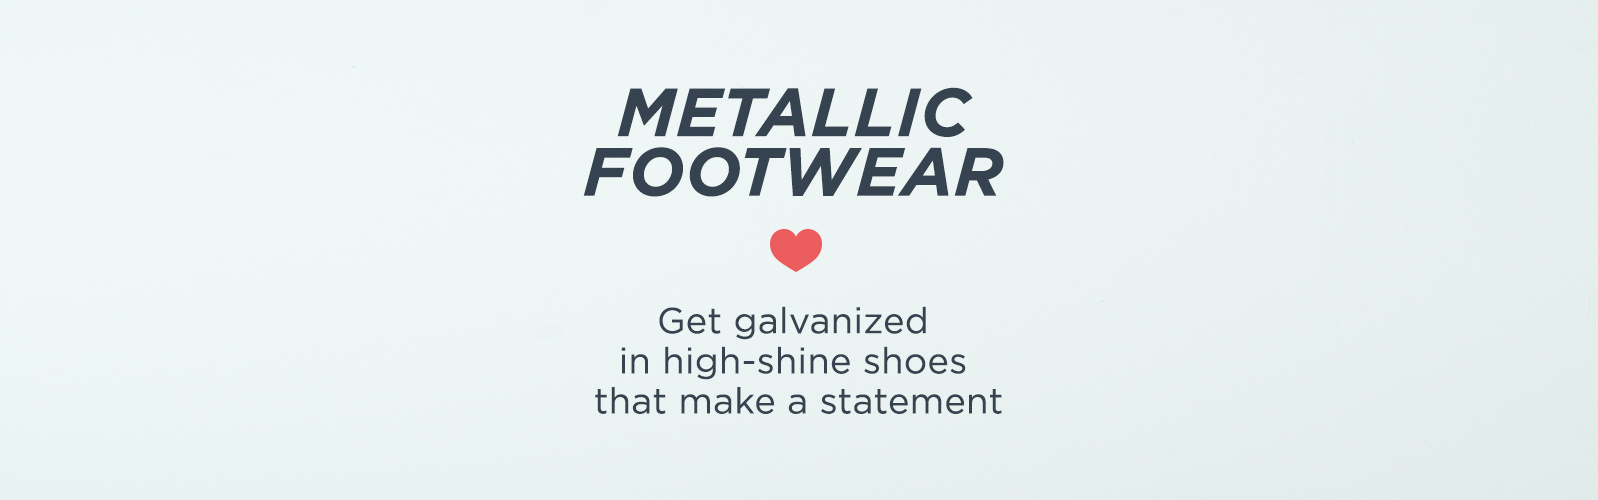 Metallic Footwear — Get galvanized in high-shine shoes that make an impact